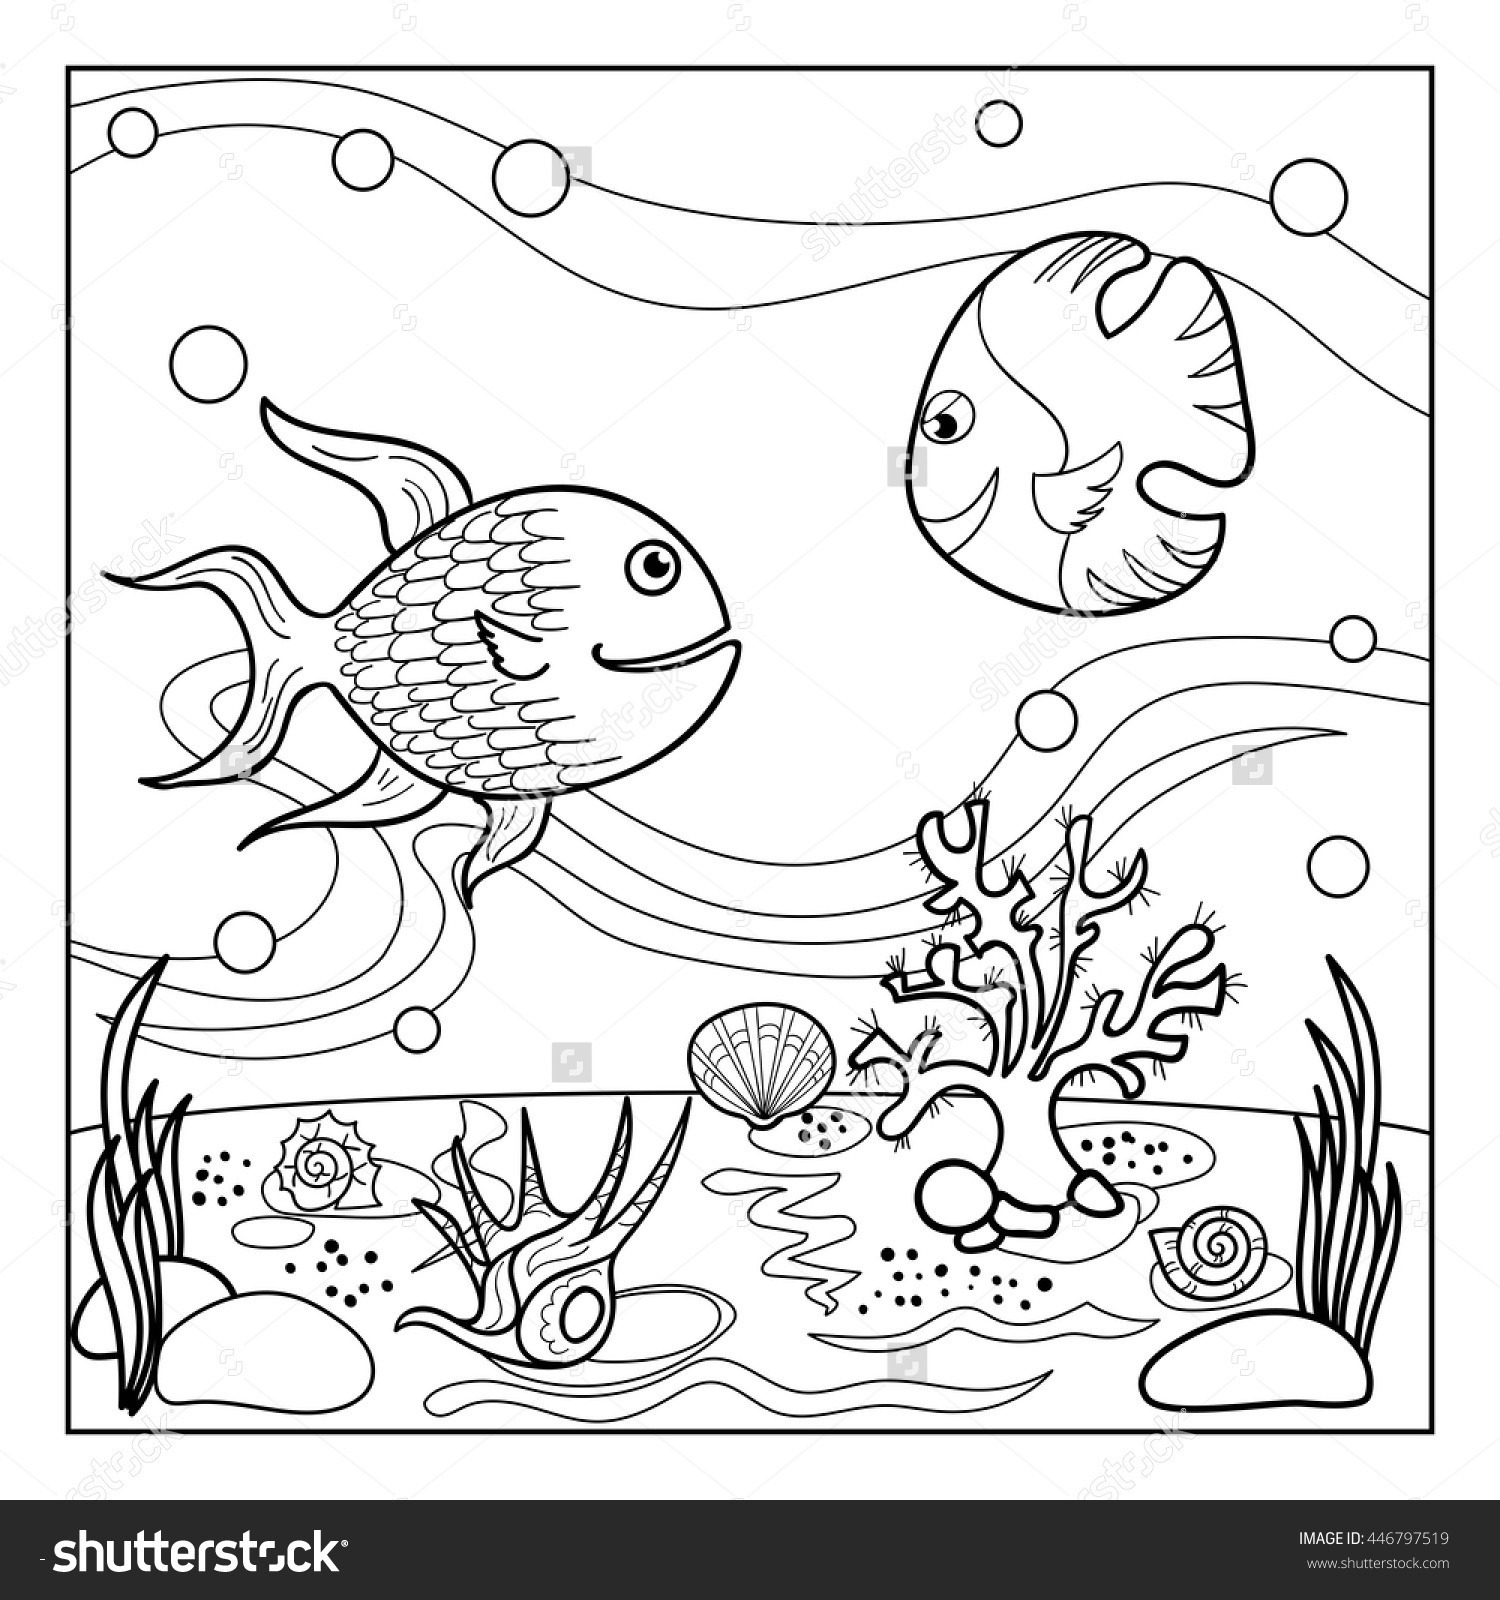 Water Cycle Coloring Pages  Download 5p - Free For kids